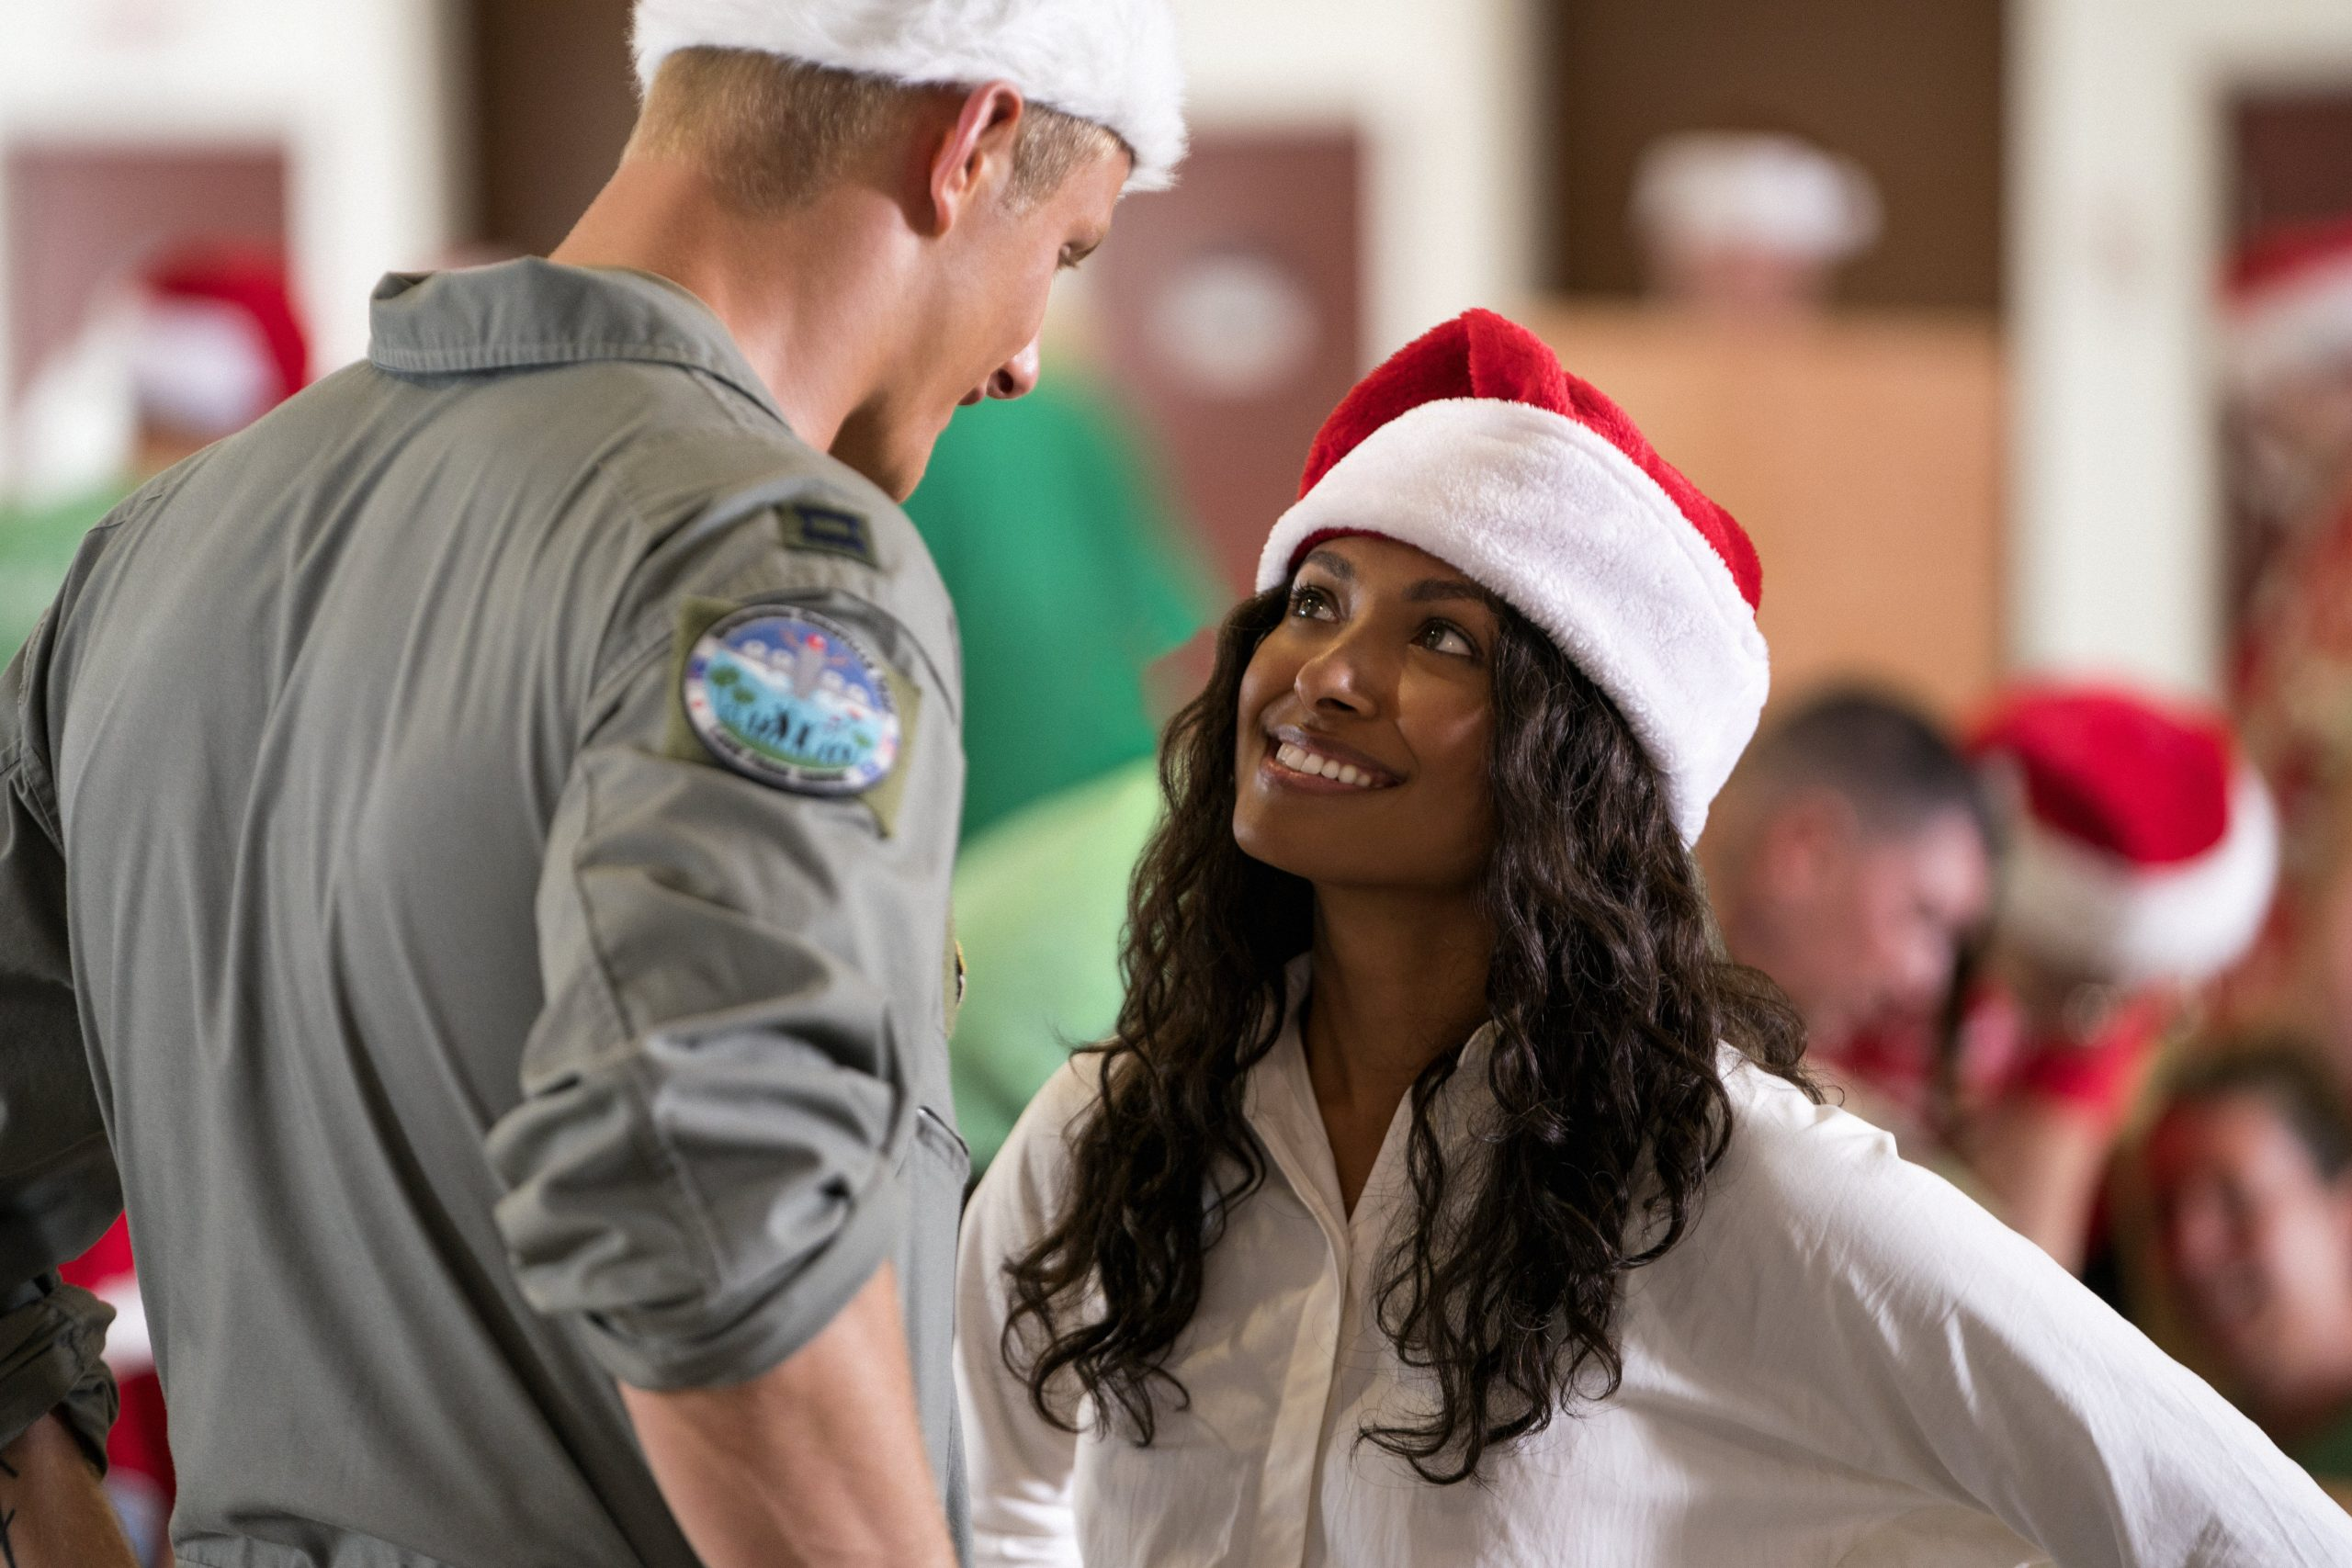 Operation Christmas Drop. Alexander Ludwig as Andrew, Kat Graham as Erica in Operation Christmas Drop. Cr. Ricardo Hubbs//NETFLIX © 2020